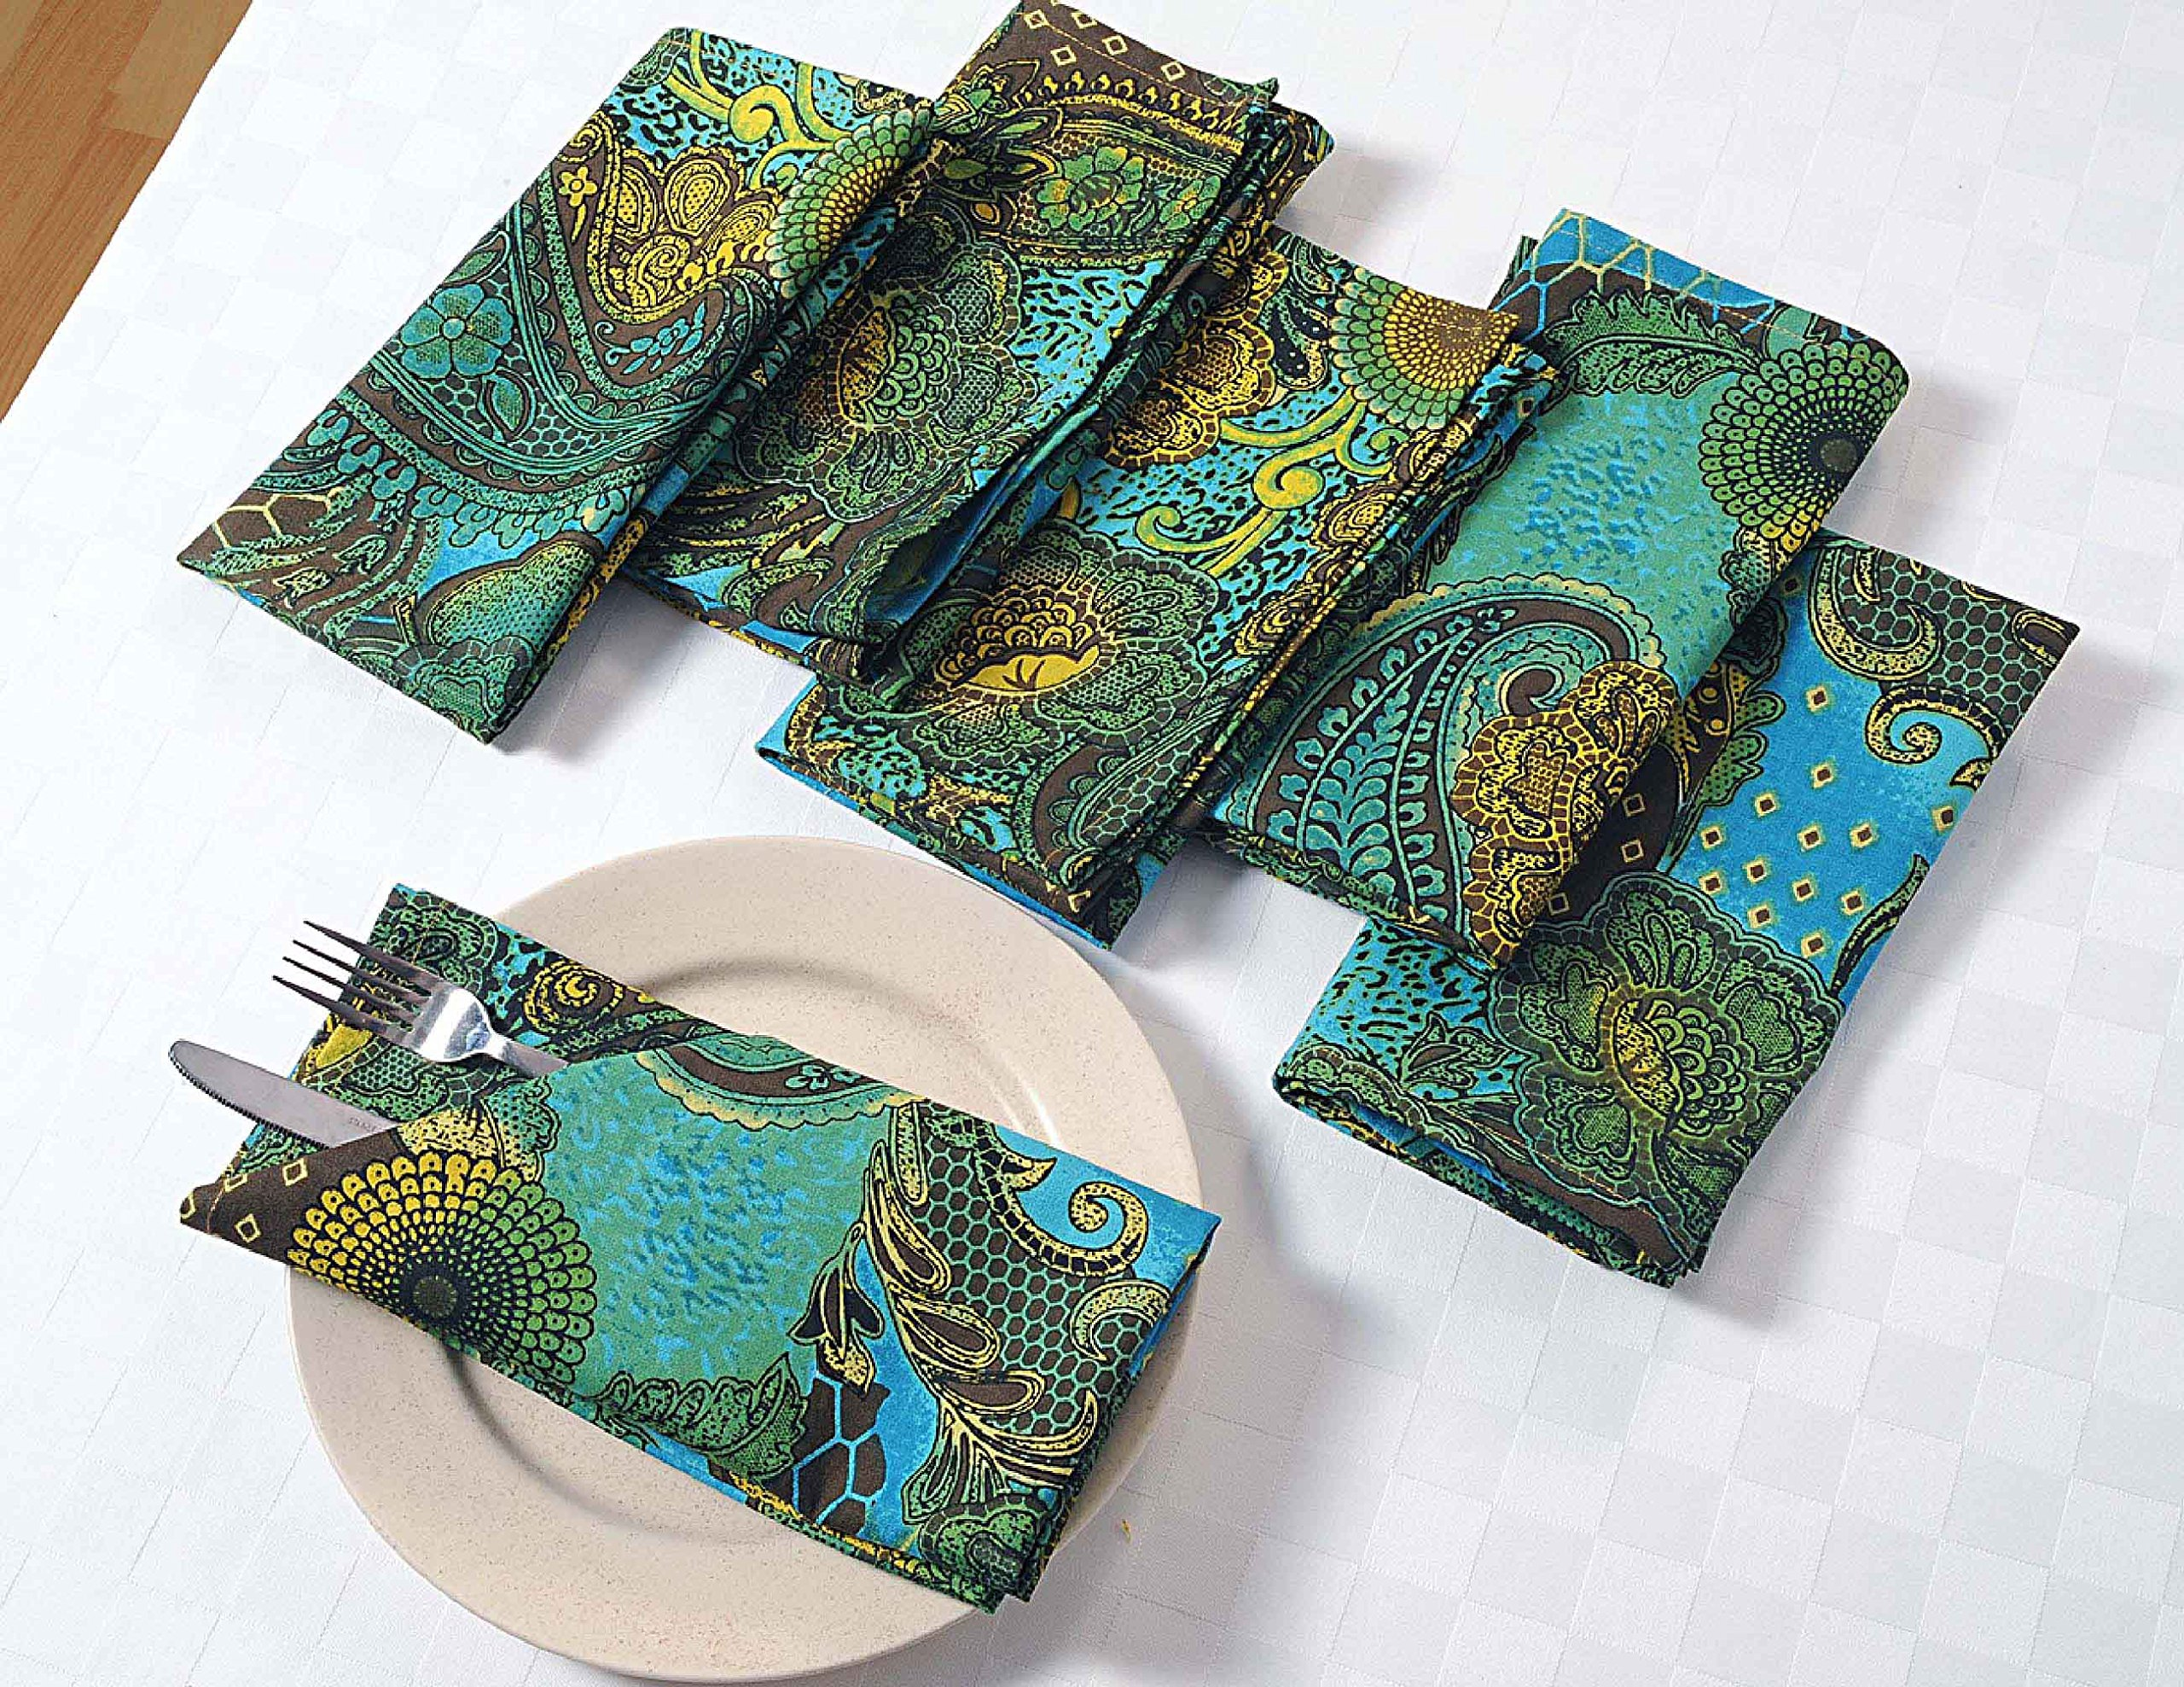 Colorful Paisley Cotton Dinner Napkins - 20'' x 20'' - Set of 24 Premium Table Linens for the Dining Room - Turquoise, Gold, Green and Chocolate